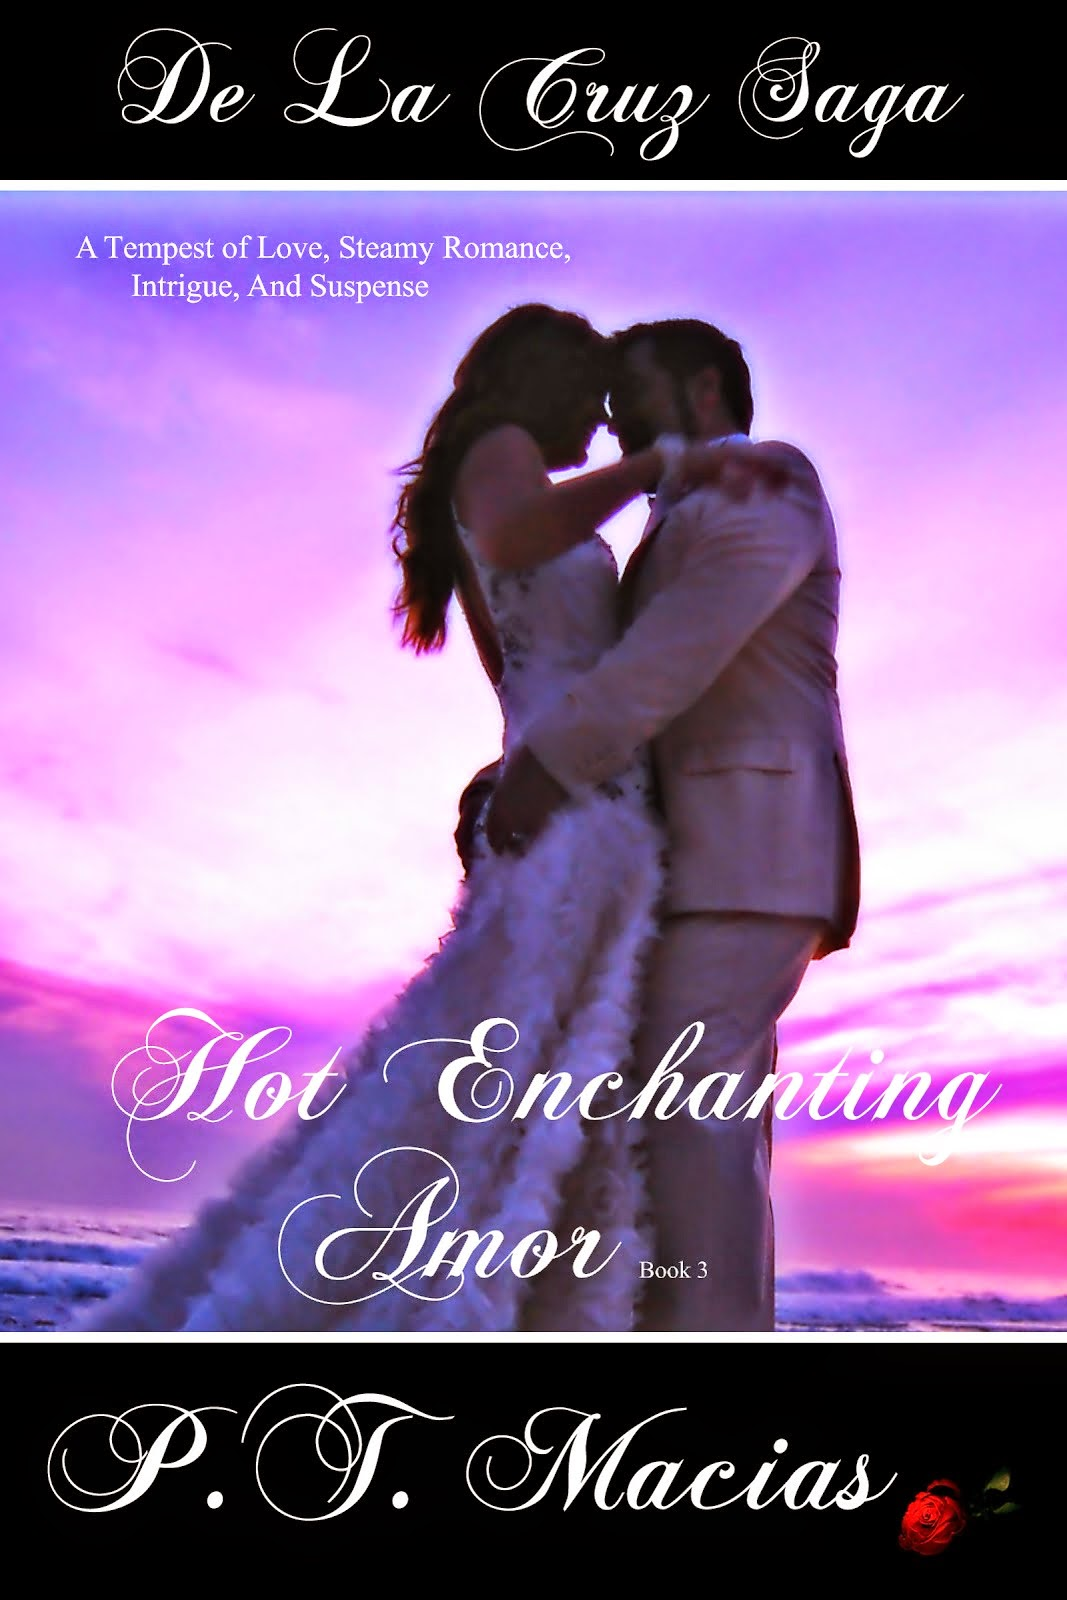 Hot Enchanting Amor, De La Cruz Saga Book 3